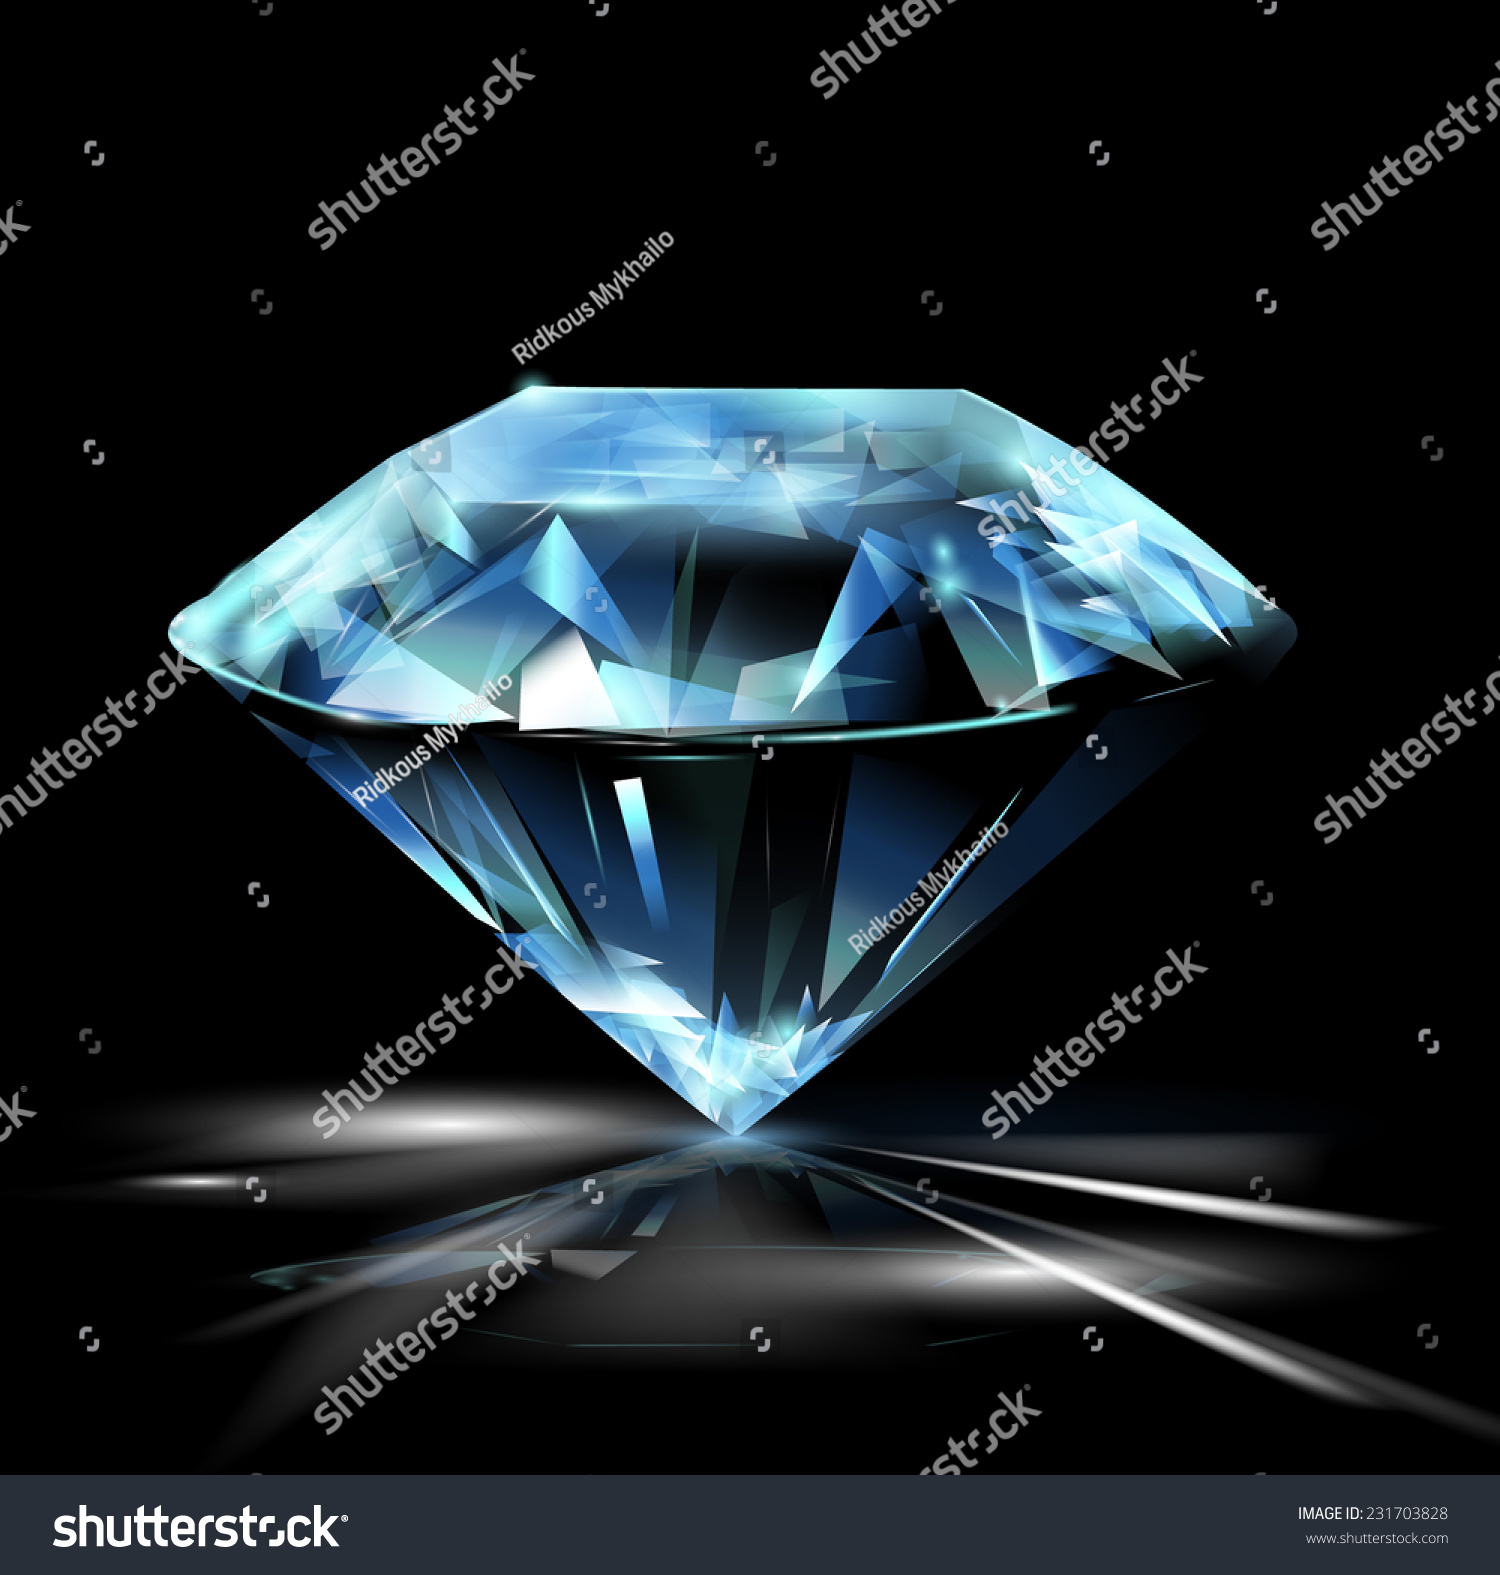 Istock Photo Royalty Free Stock Photography Vector Art